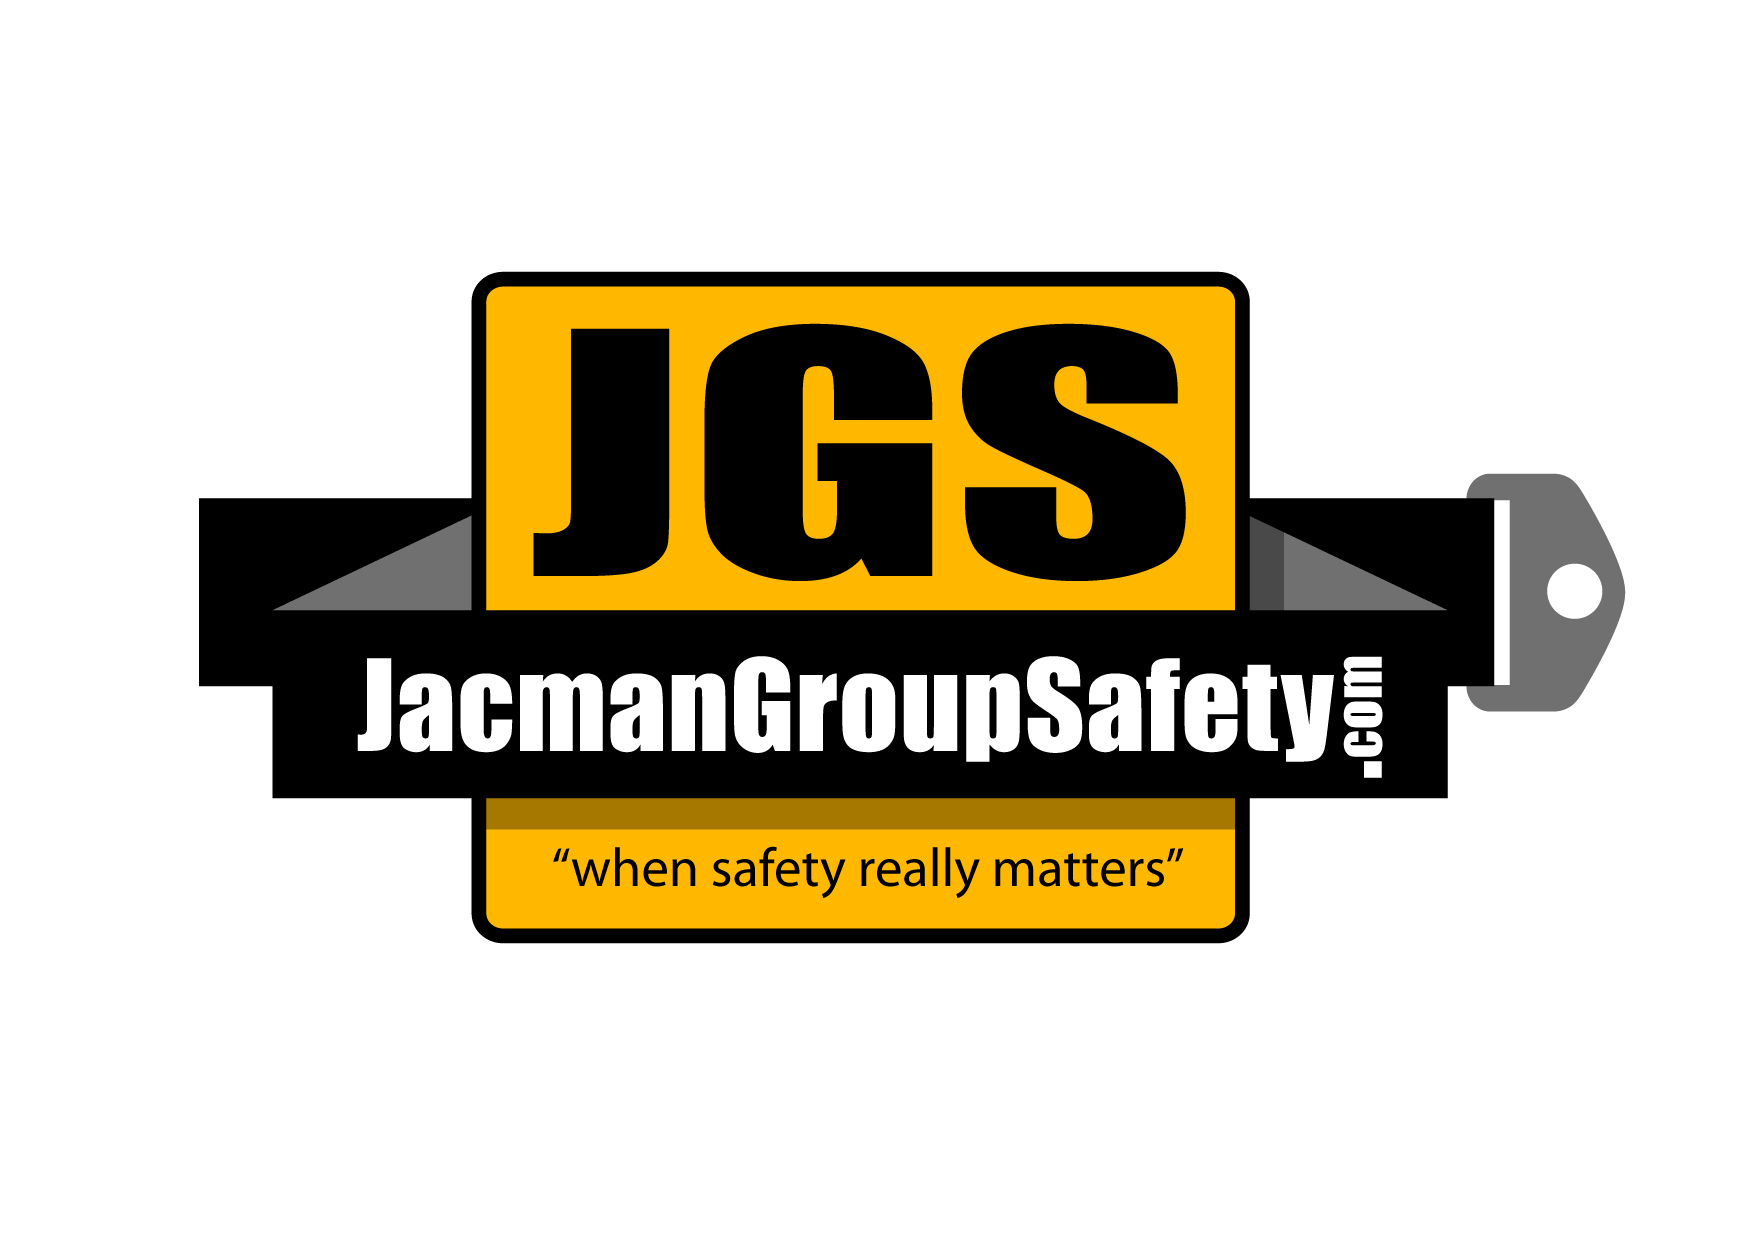 Logo Design by Wilfredo Mendoza - Entry No. 138 in the Logo Design Contest The Jacman Group Logo Design.